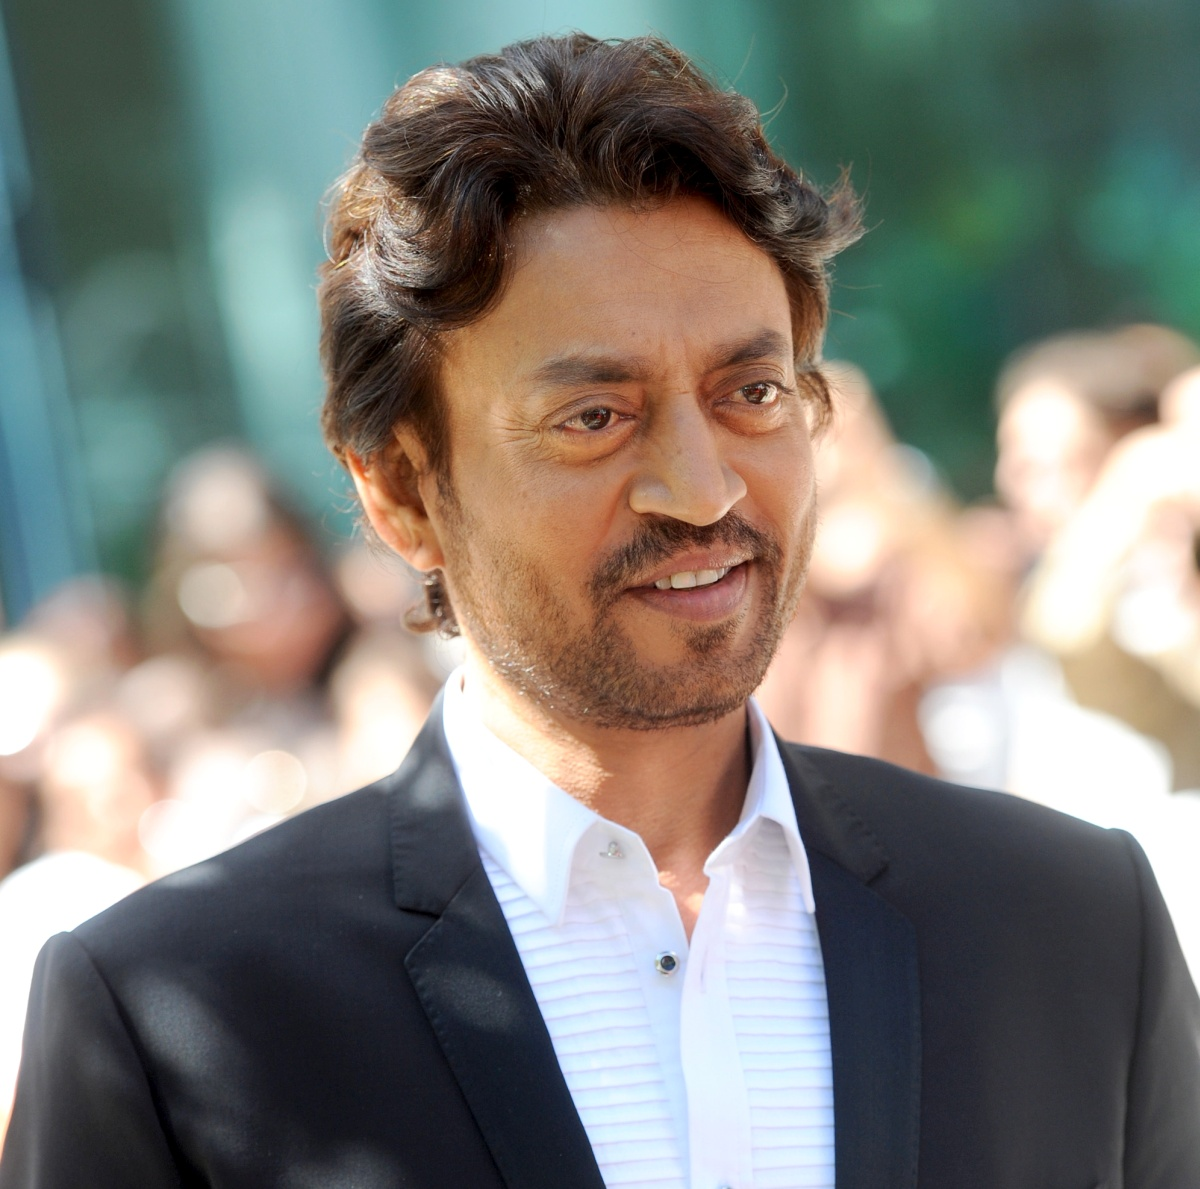 A National Award named after Irrfan?